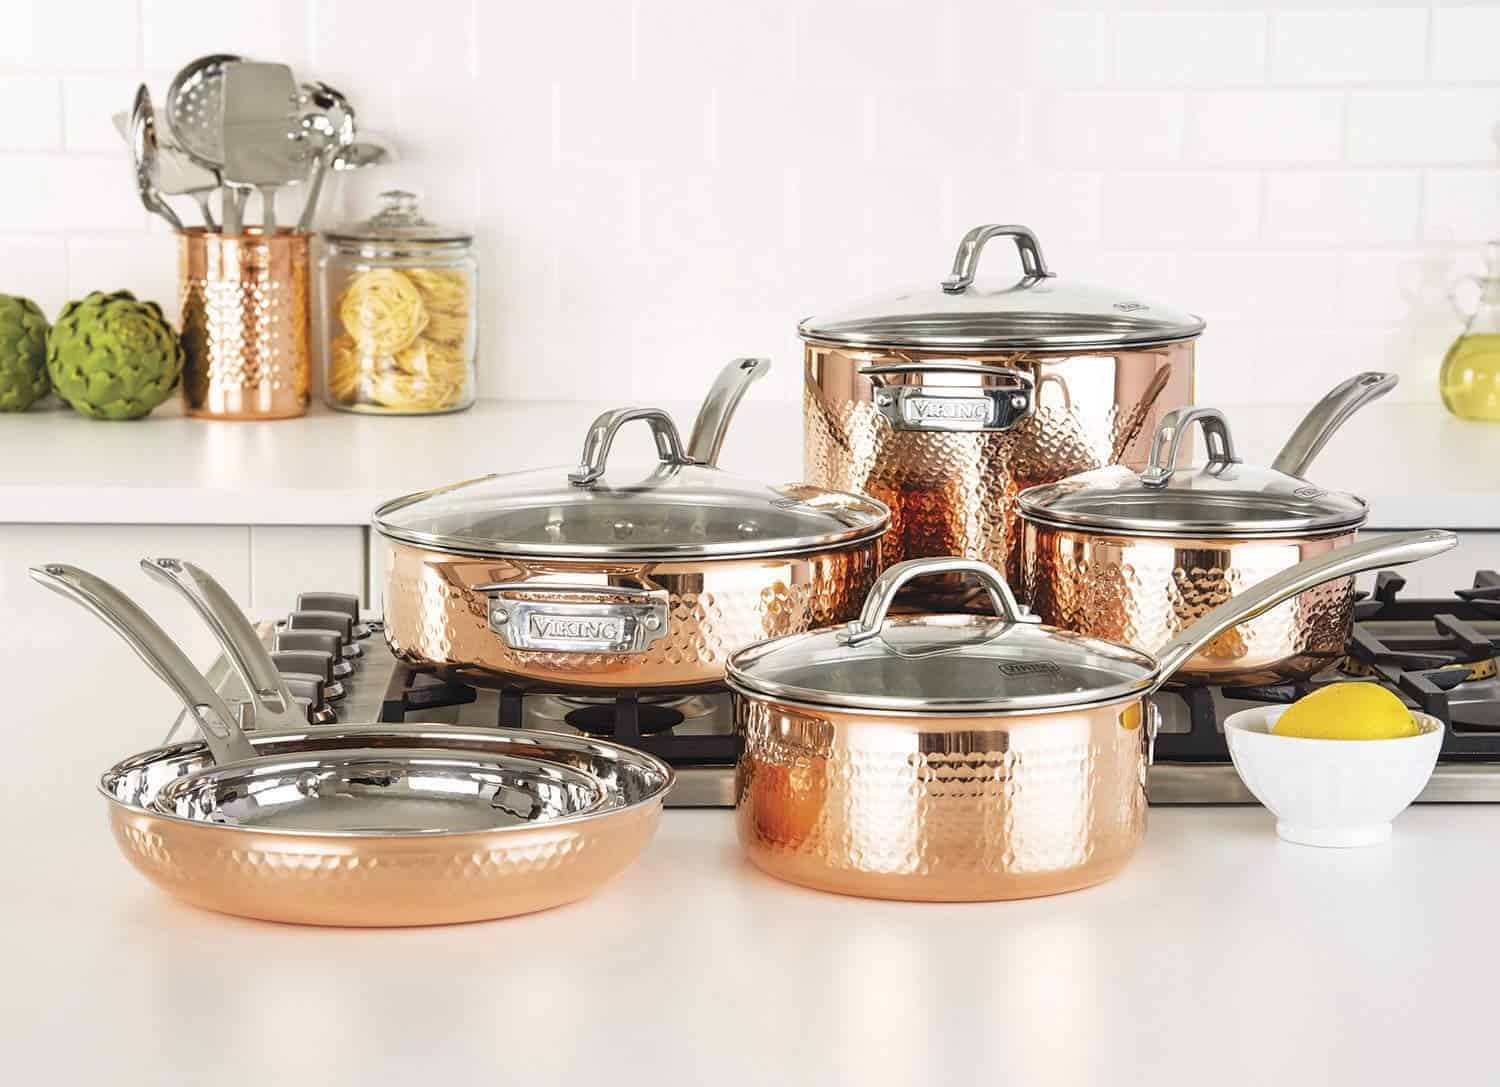 Beste moderne look: Viking Culinary Hammered Copper Clad Cookware Set